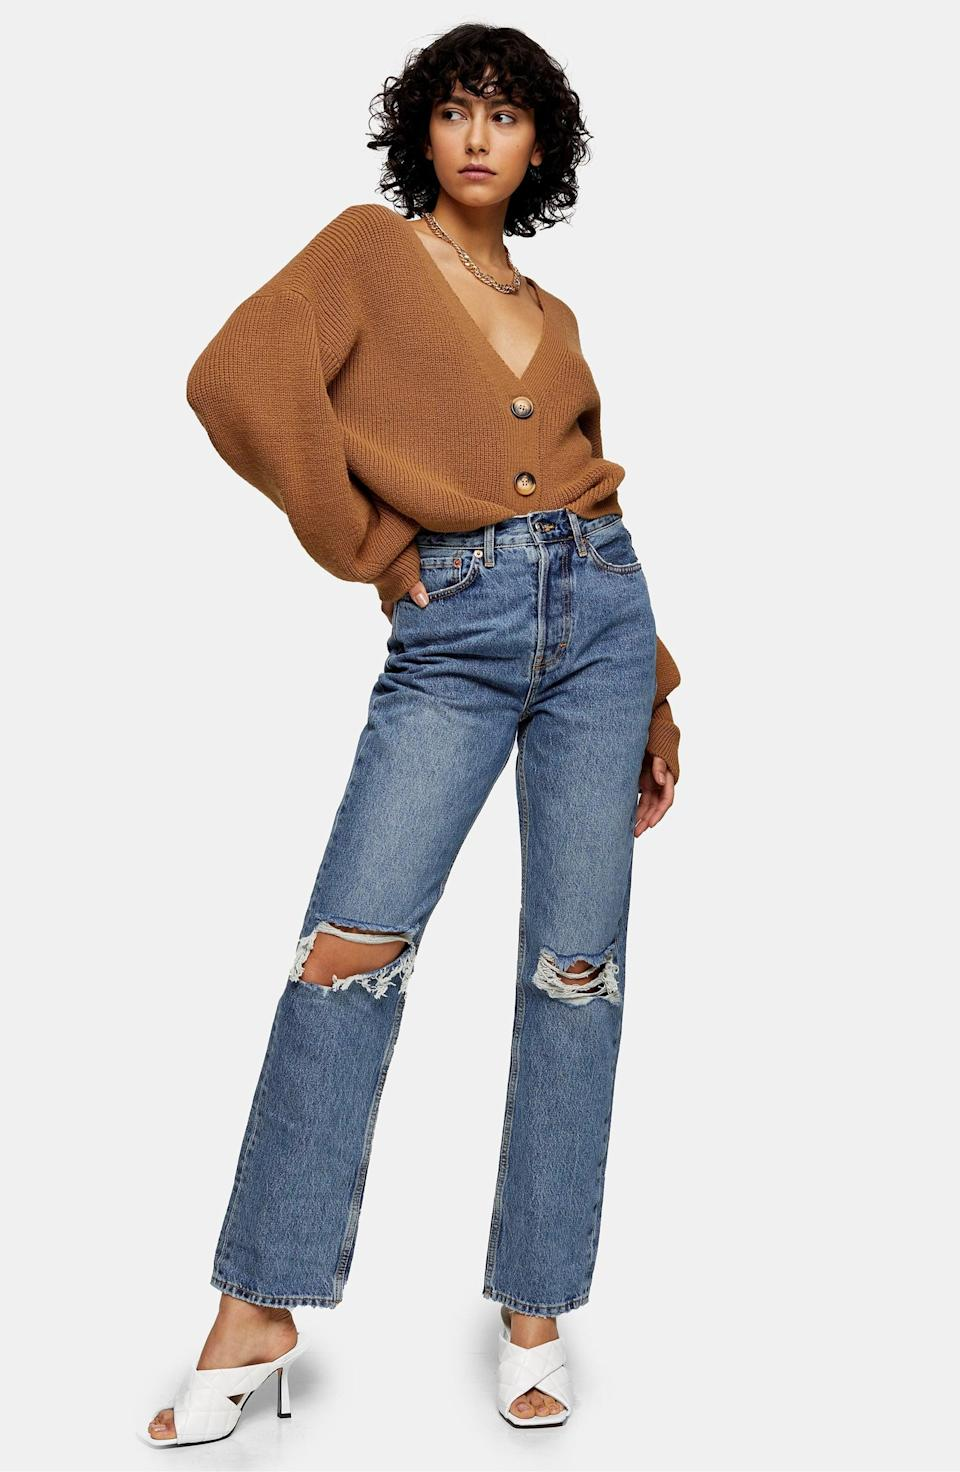 "<p>You can style these <a href=""https://www.popsugar.com/buy/Topshop-Ripped-Dad-Jeans-585704?p_name=Topshop%20Ripped%20Dad%20Jeans&retailer=shop.nordstrom.com&pid=585704&price=30&evar1=fab%3Aus&evar9=45615413&evar98=https%3A%2F%2Fwww.popsugar.com%2Ffashion%2Fphoto-gallery%2F45615413%2Fimage%2F47583286%2FTopshop-Ripped-Dad-Jeans&list1=shopping%2Cdenim%2Cwinter%2Cwinter%20fashion&prop13=mobile&pdata=1"" class=""link rapid-noclick-resp"" rel=""nofollow noopener"" target=""_blank"" data-ylk=""slk:Topshop Ripped Dad Jeans"">Topshop Ripped Dad Jeans</a> ($30) so many ways.</p>"